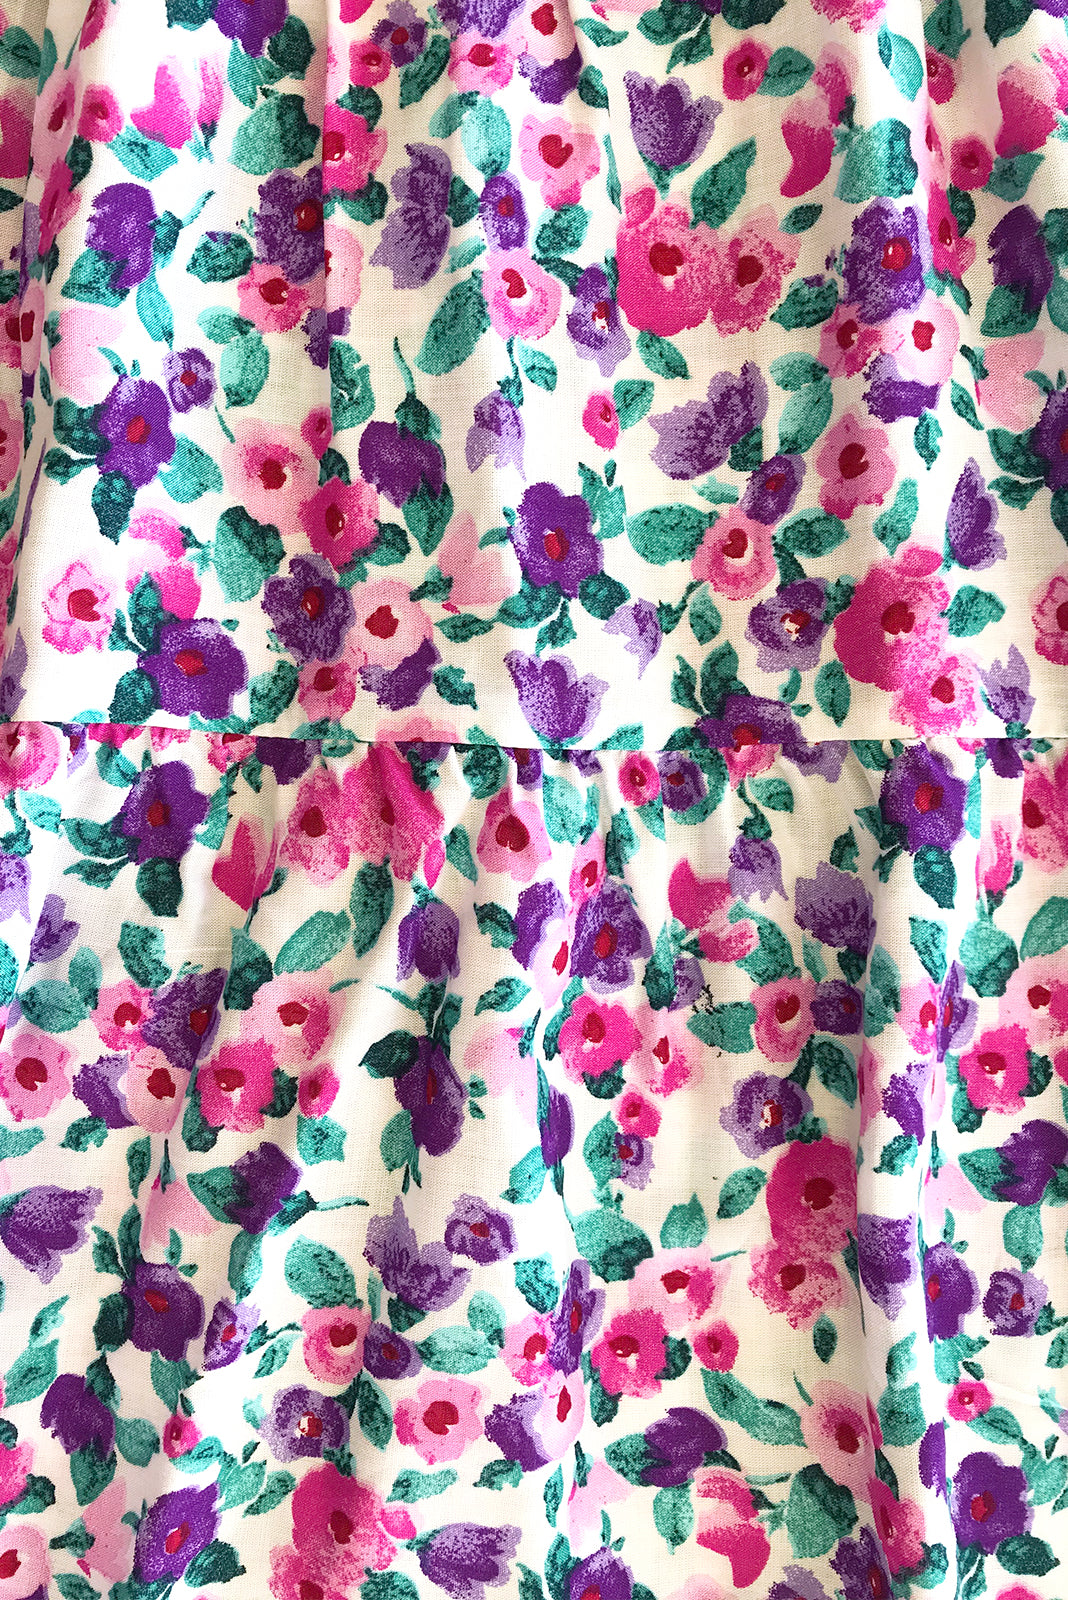 Fabric Swatch of Jina Magenta Dress featuring 100% rayon in white base with pink and purple floral print.